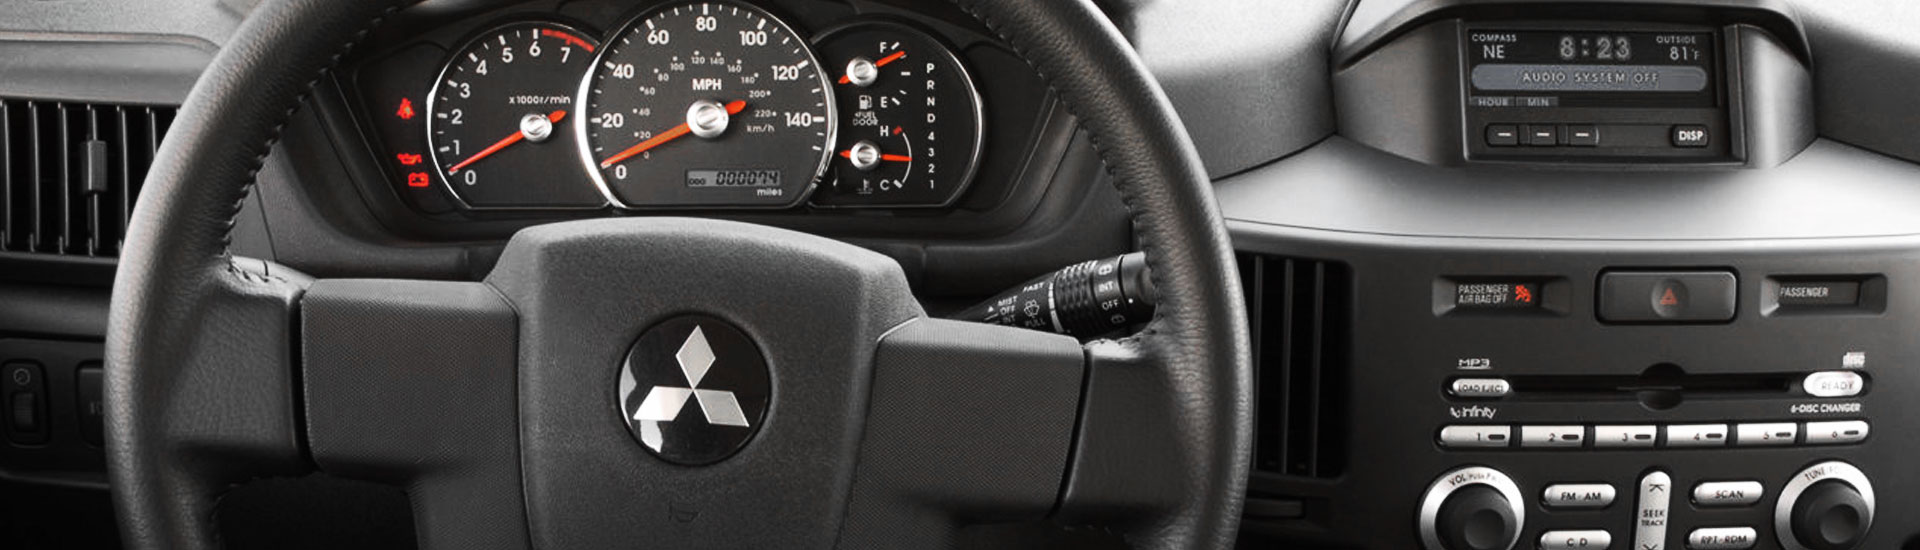 Mitsubishi Endeavor Custom Dash Kits